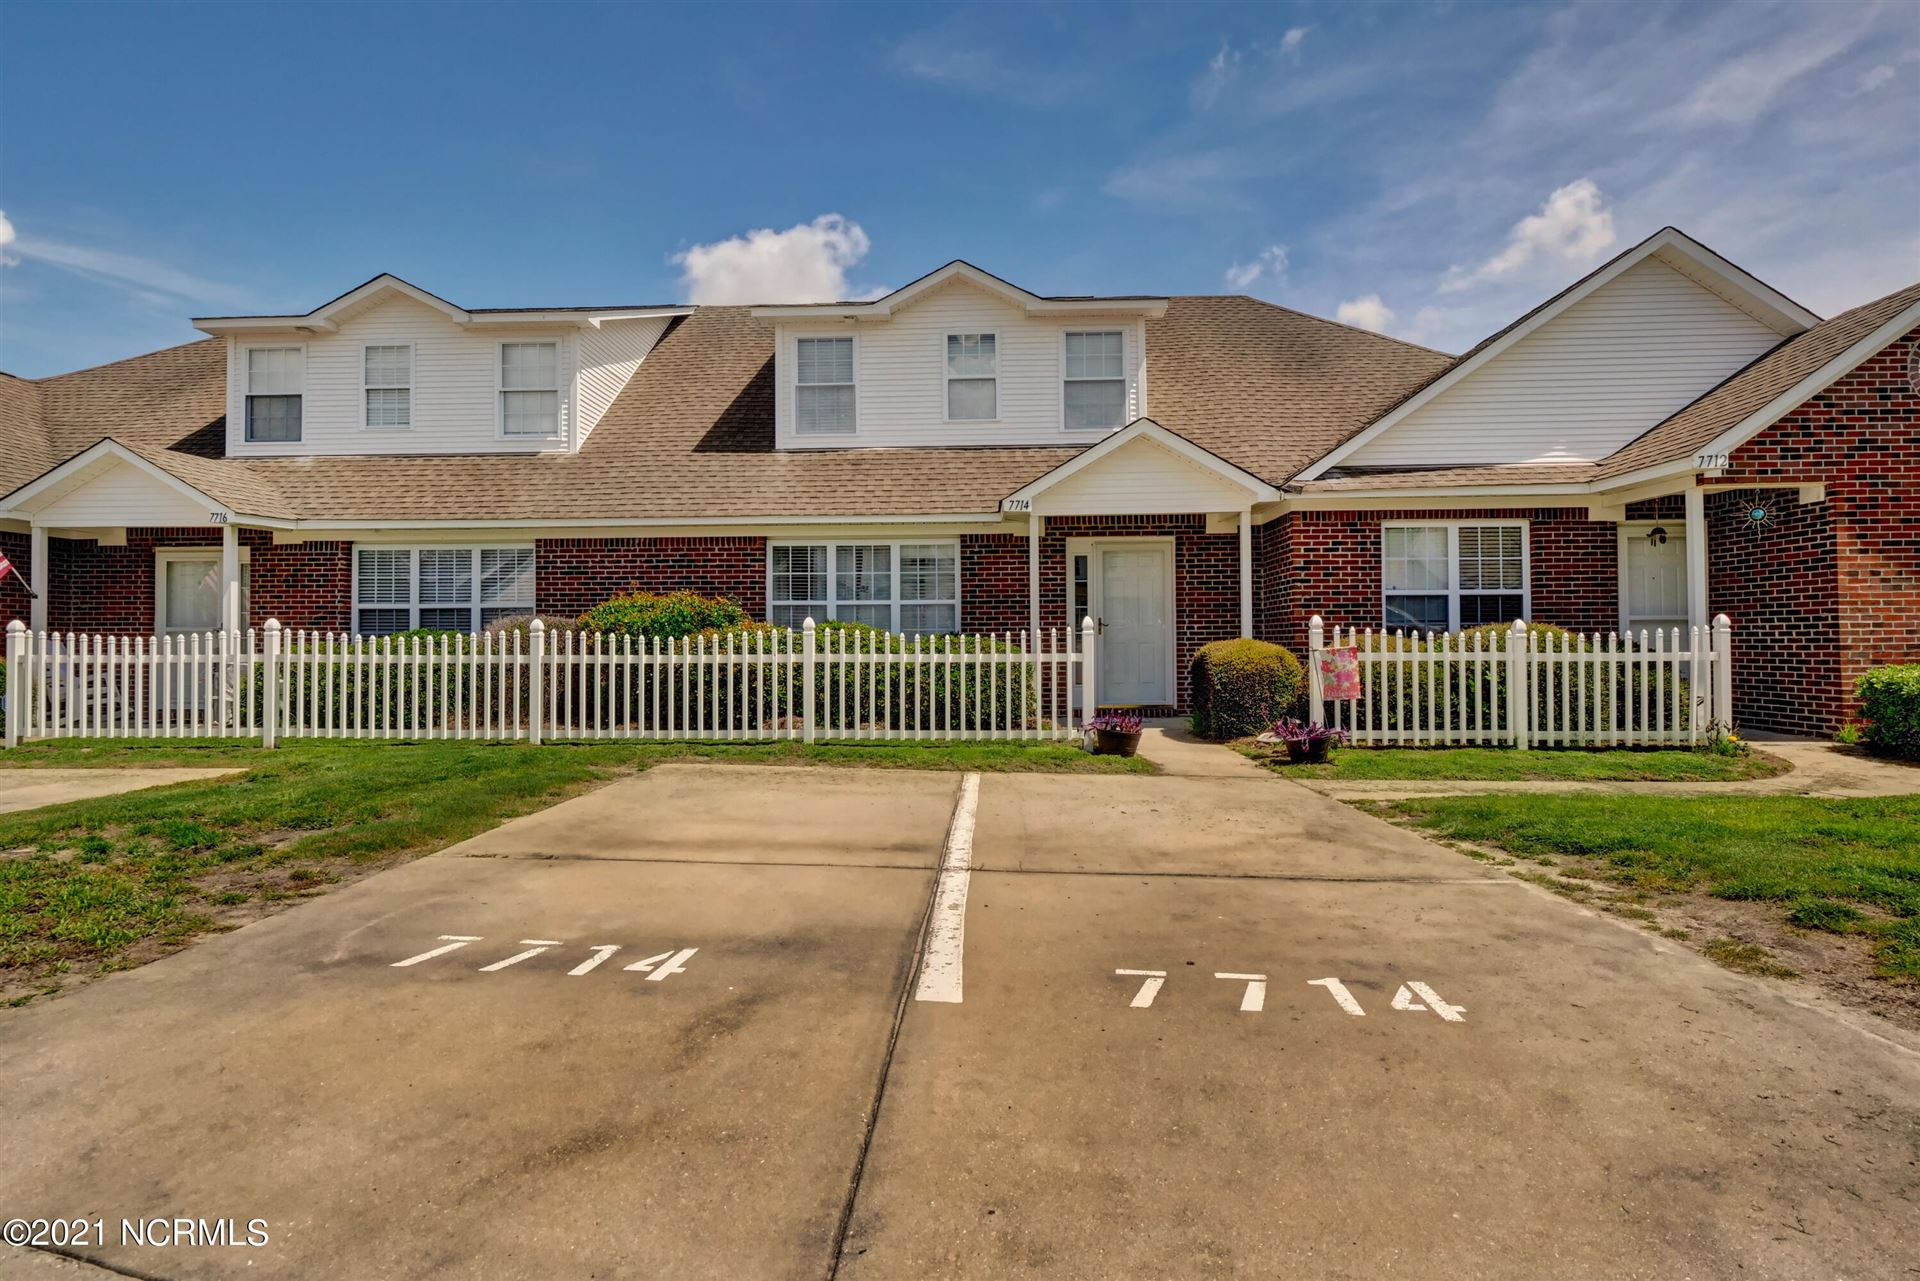 Photo for 7714 Trap Way, Wilmington, NC 28412 (MLS # 100287063)